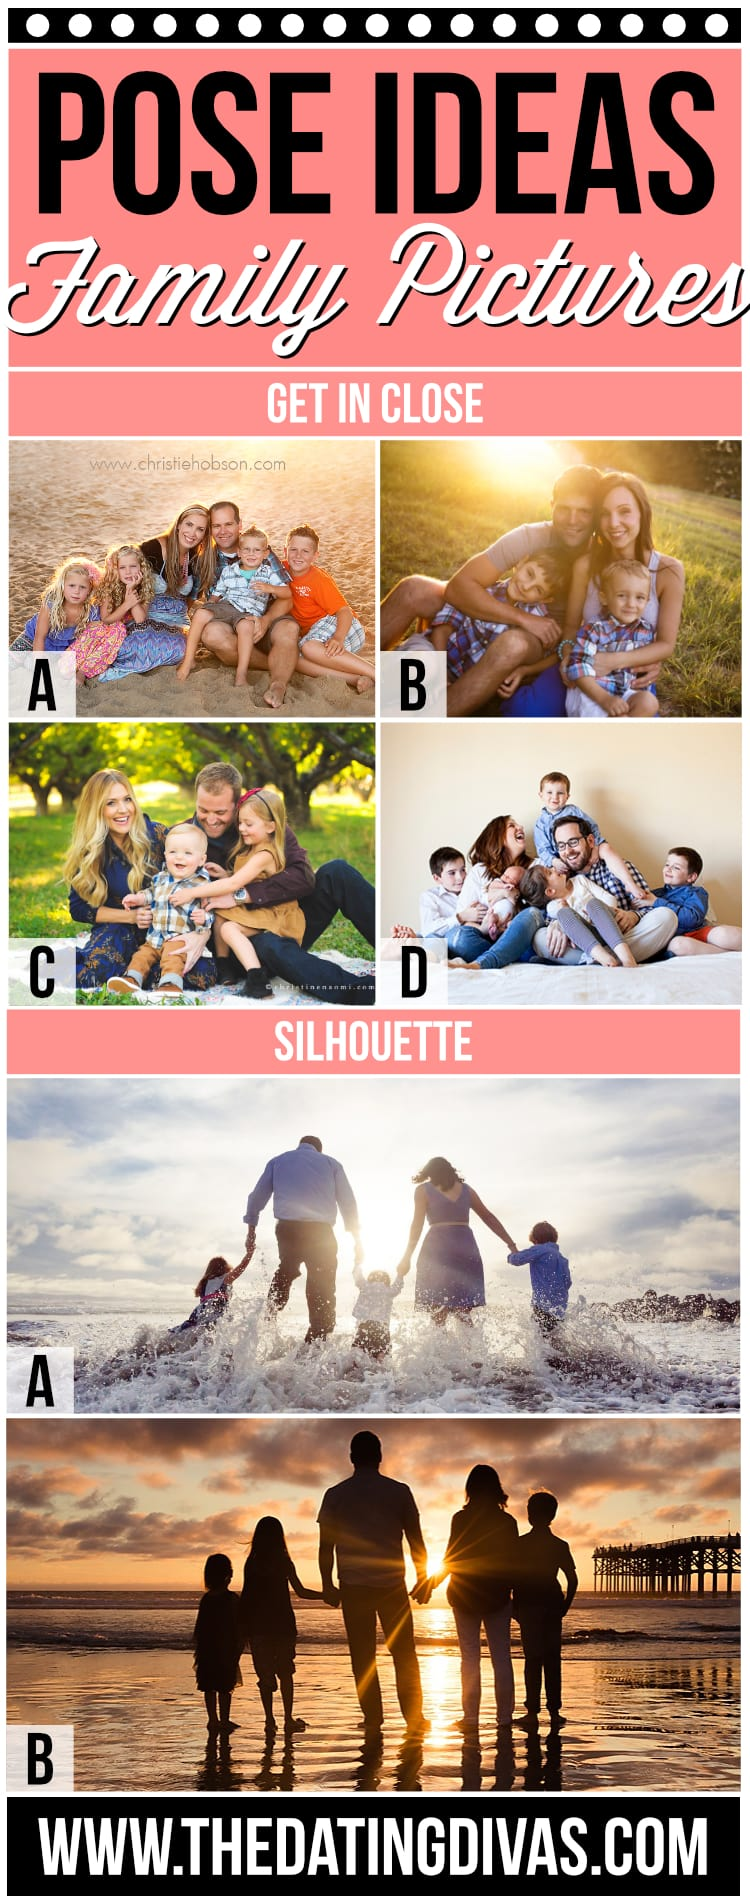 Picture Pose Ideas for Families